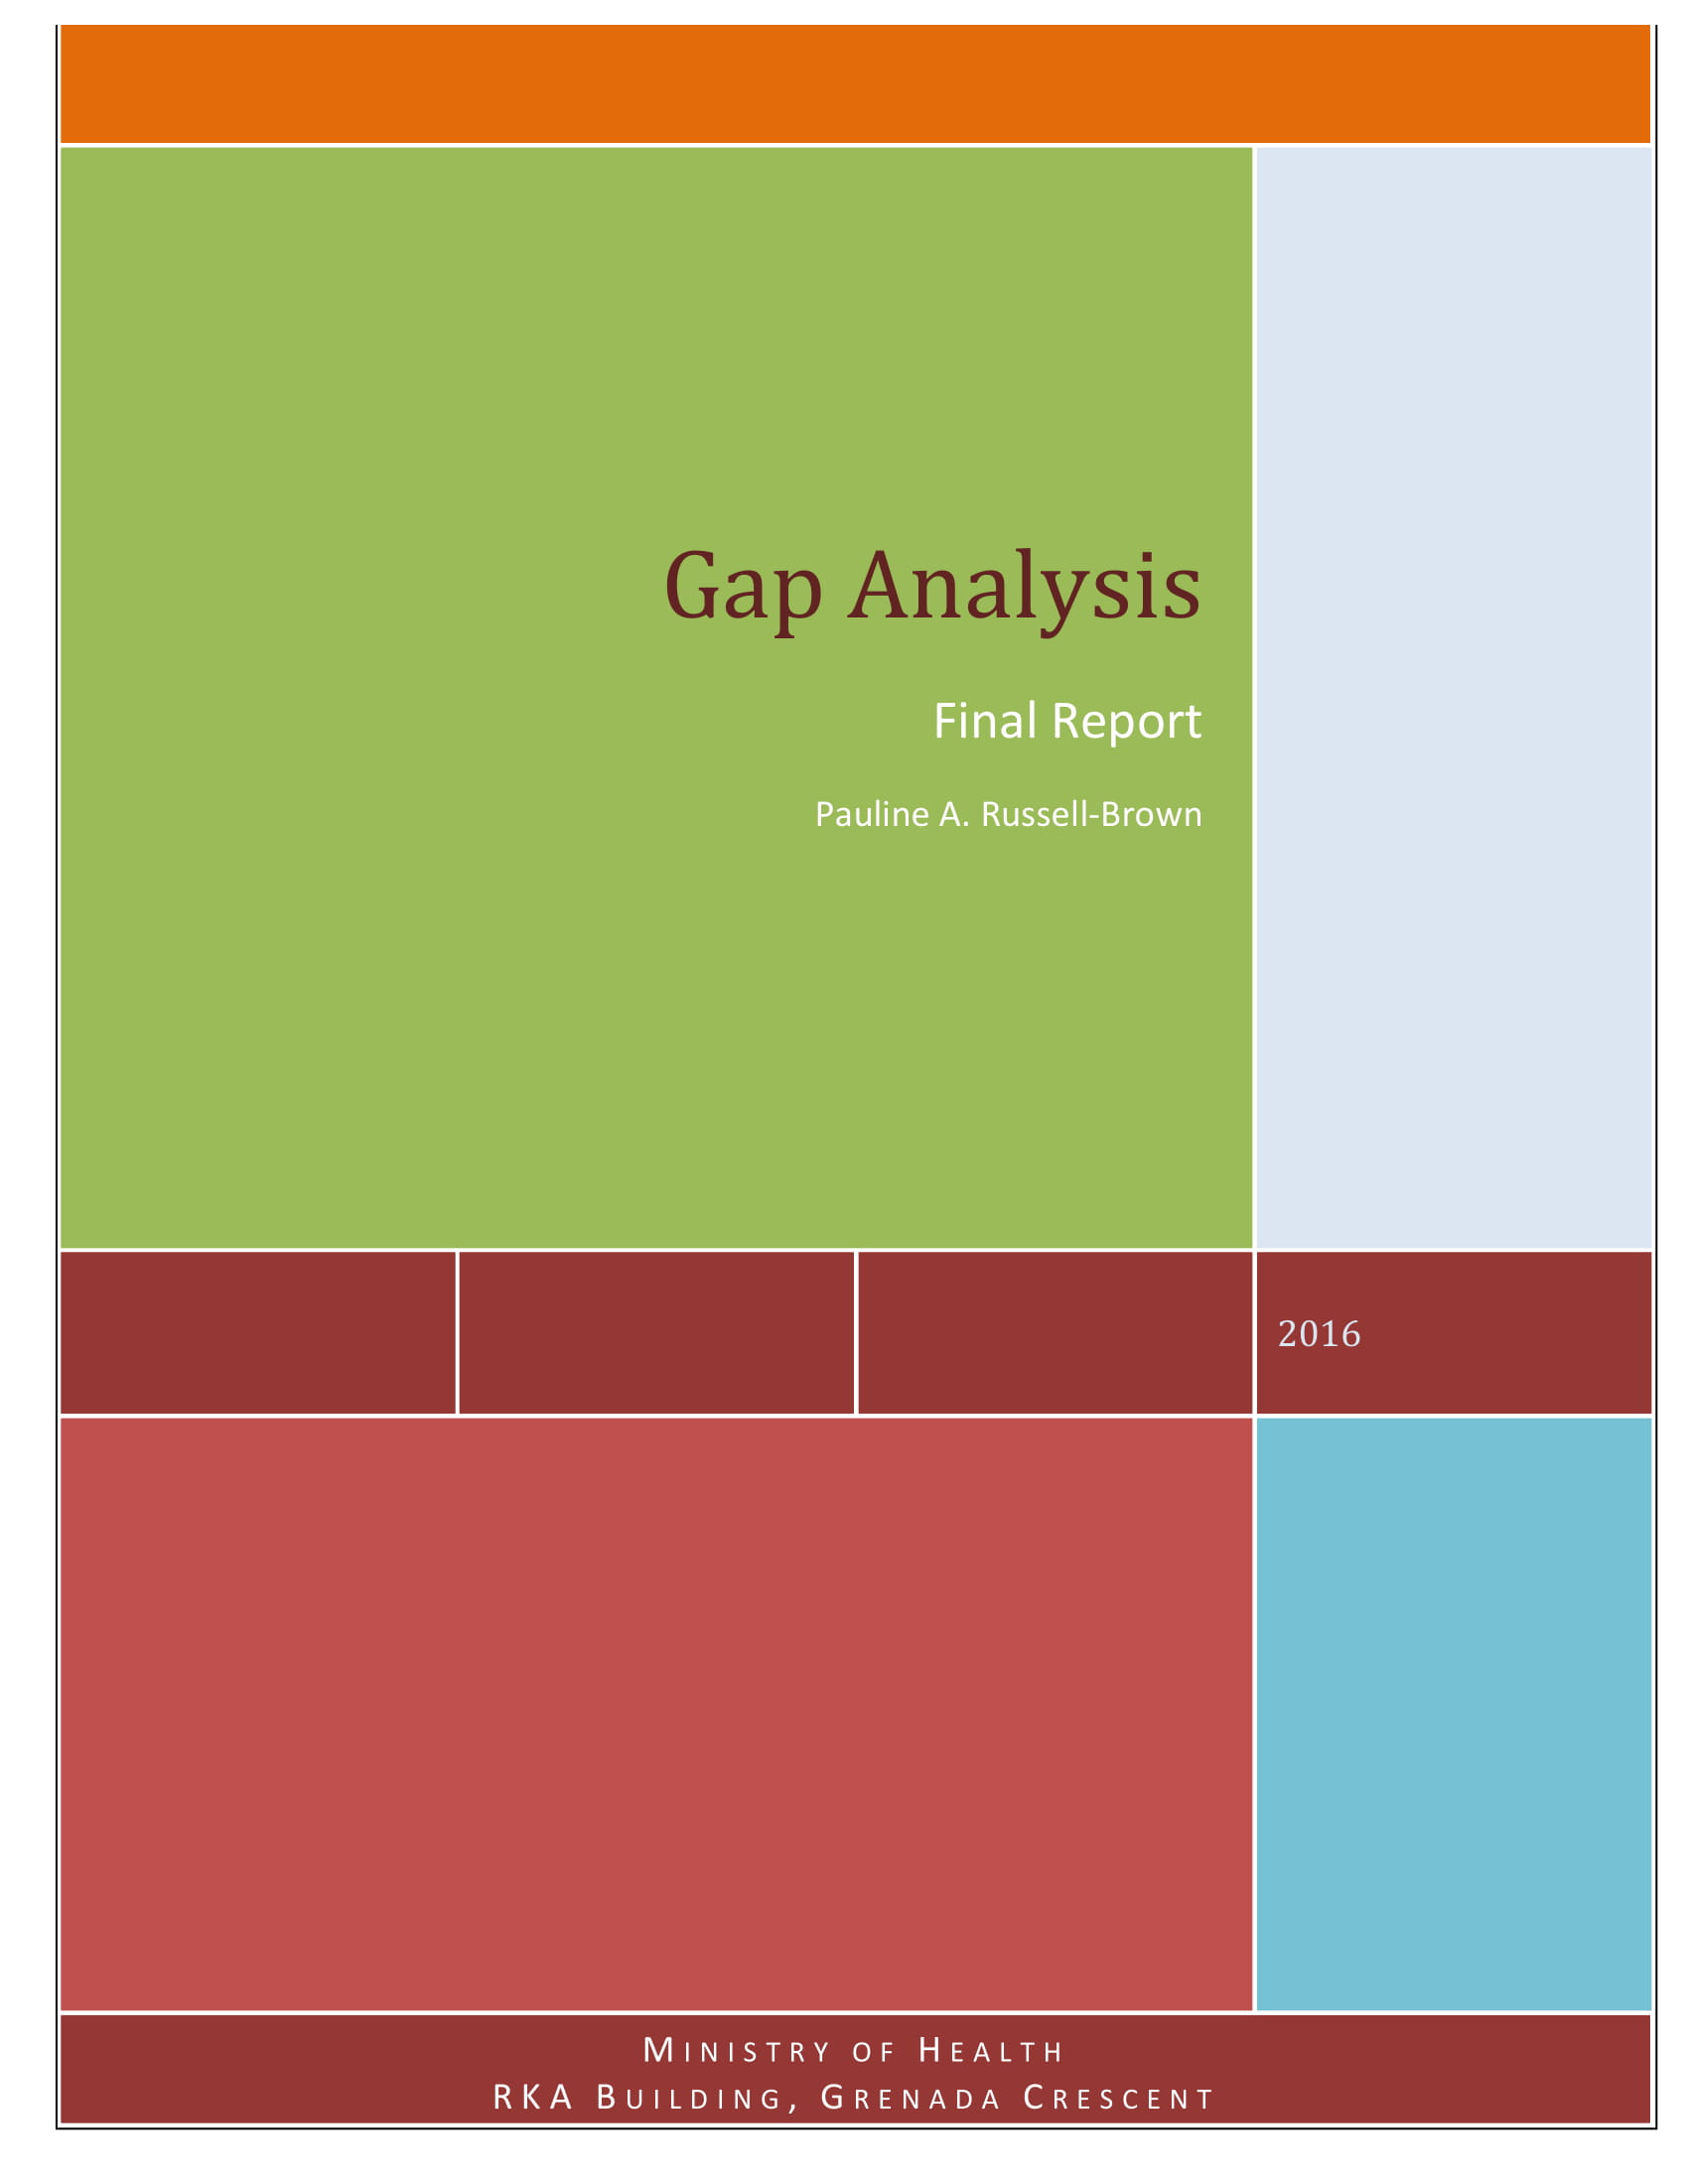 healthcare gap analysis report example 01